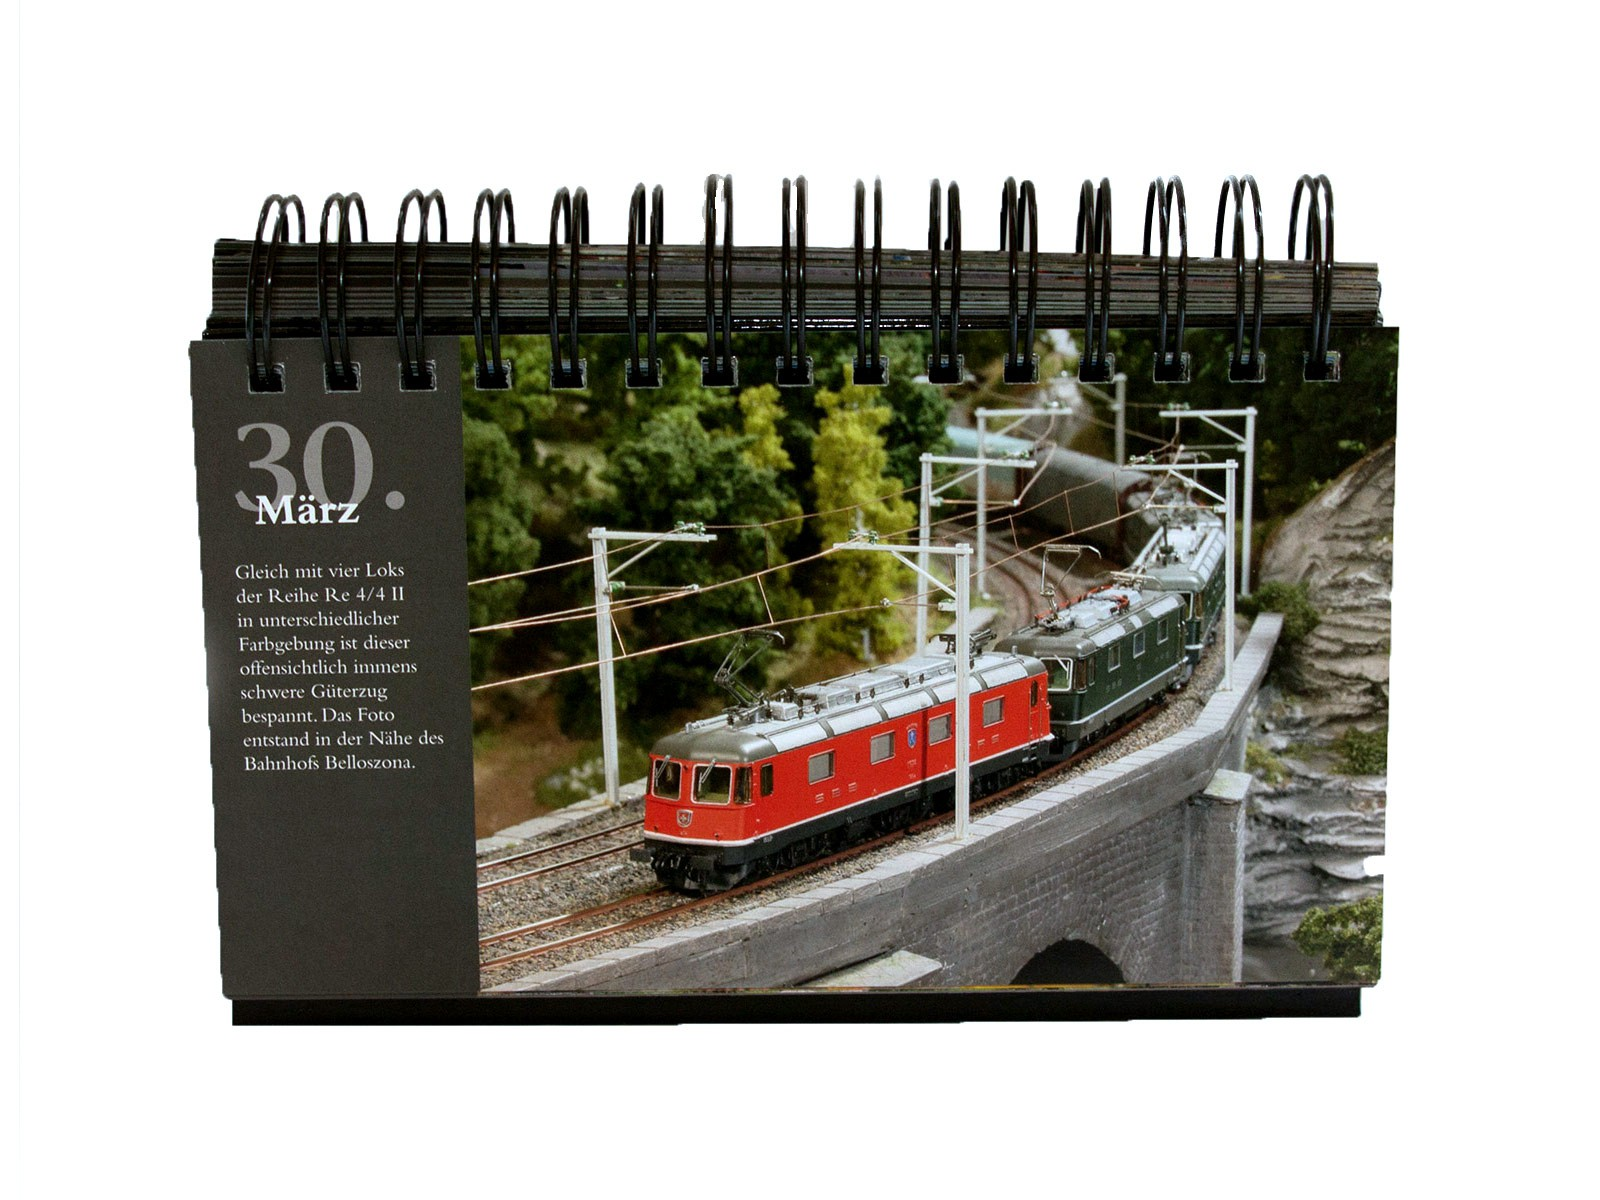 Miniatur Wunderland - perpetual calendar - with 366 pictures